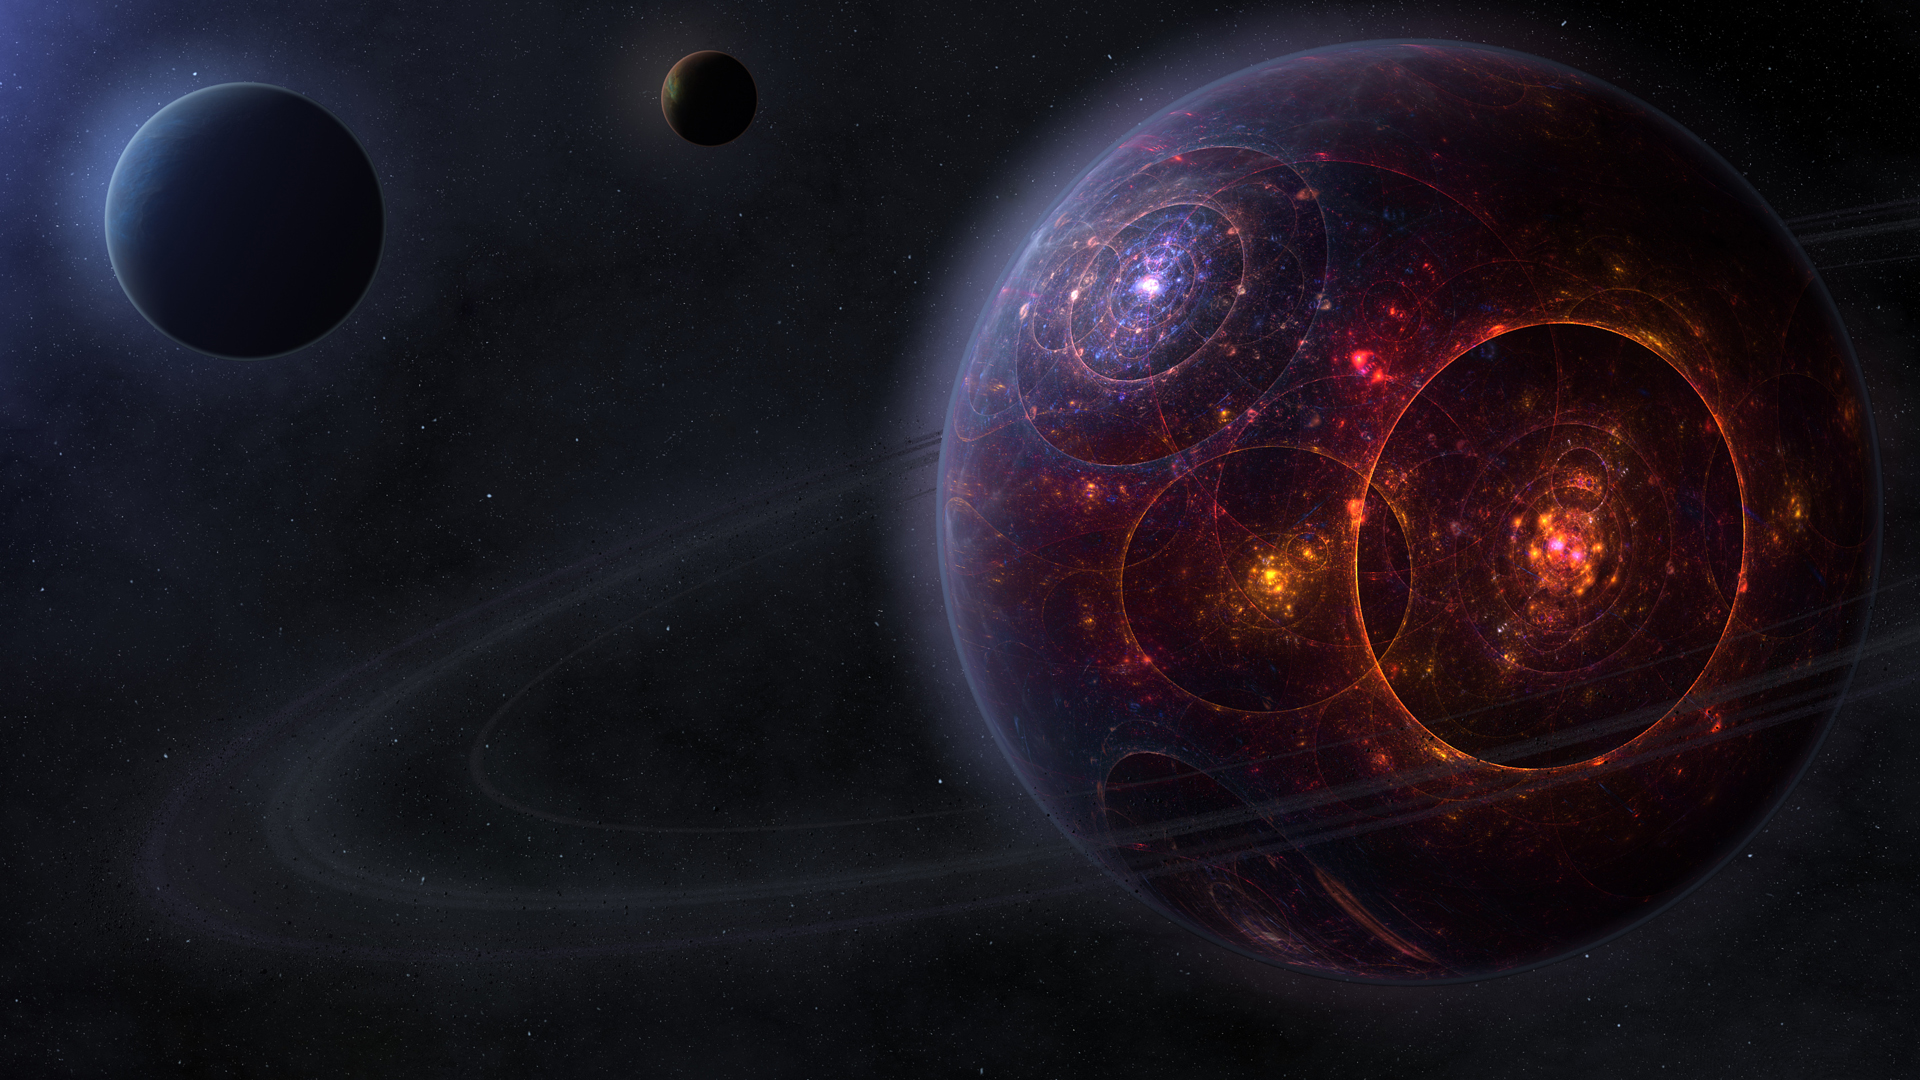 Space HD wallpaper 1920x1080 19   hebusorg   High Definition 1920x1080